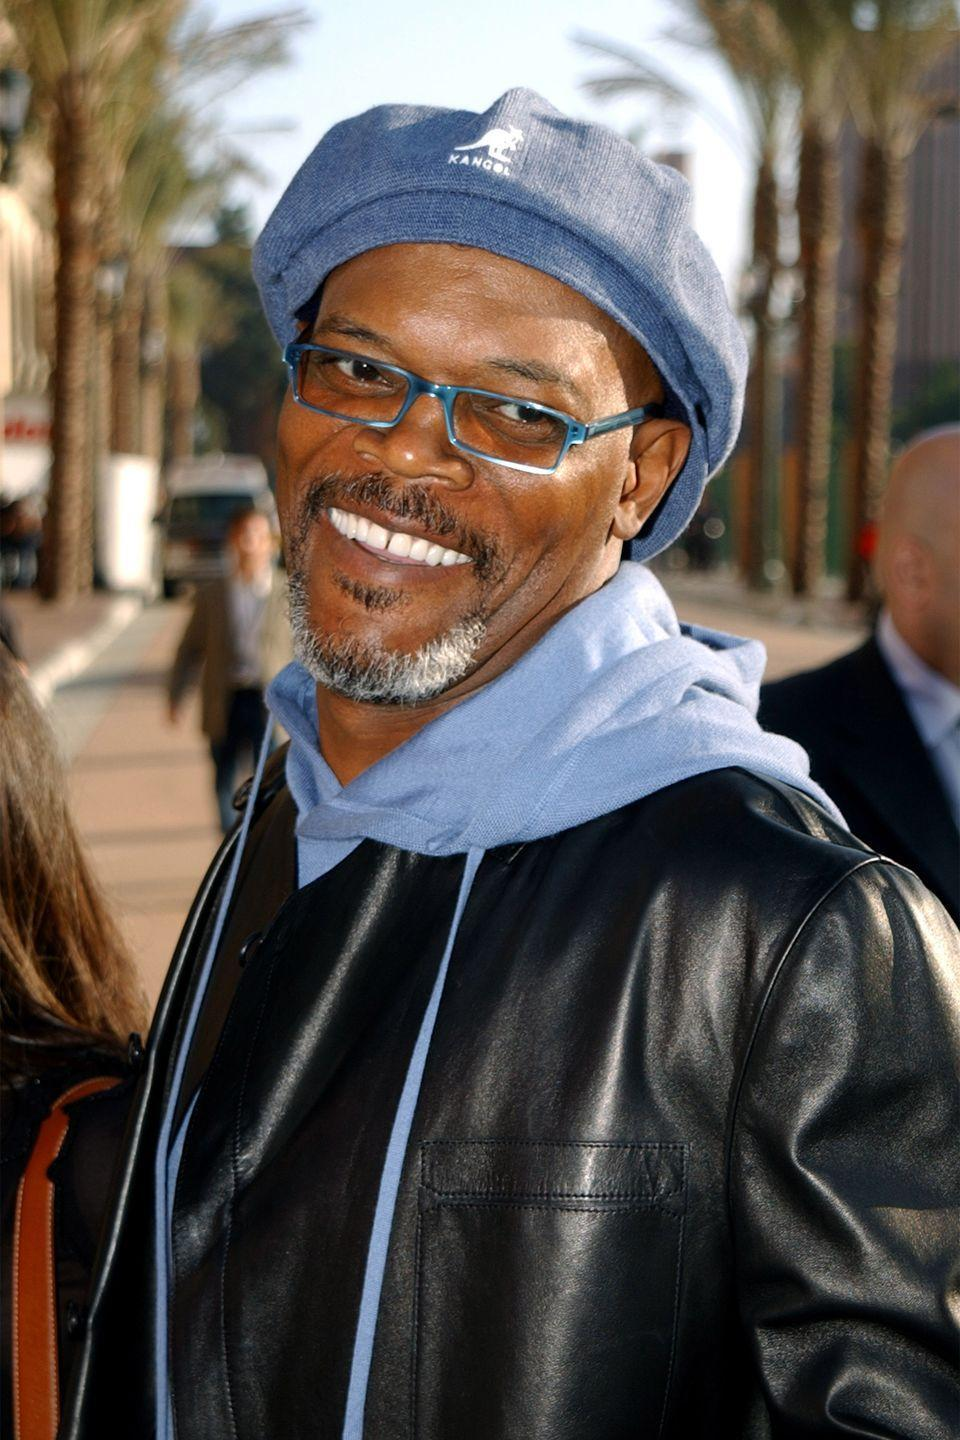 "<p>Actor Samuel L. Jackson is rarely seen without his trusty Kangol hat, no matter the occasion. He even <a href=""https://www.amazon.com/Kangol-Samuel-Jackson-P2i-Golf/dp/B01M4QE5UA?tag=syn-yahoo-20&ascsubtag=%5Bartid%7C10063.g.35716941%5Bsrc%7Cyahoo-us"" rel=""nofollow noopener"" target=""_blank"" data-ylk=""slk:partnered"" class=""link rapid-noclick-resp"">partnered</a> with the brand on his own line. From talk show appearances to red carpet photo ops, the hat has become a key part of the actor's style. We can only imagine how many he actually owns. </p>"